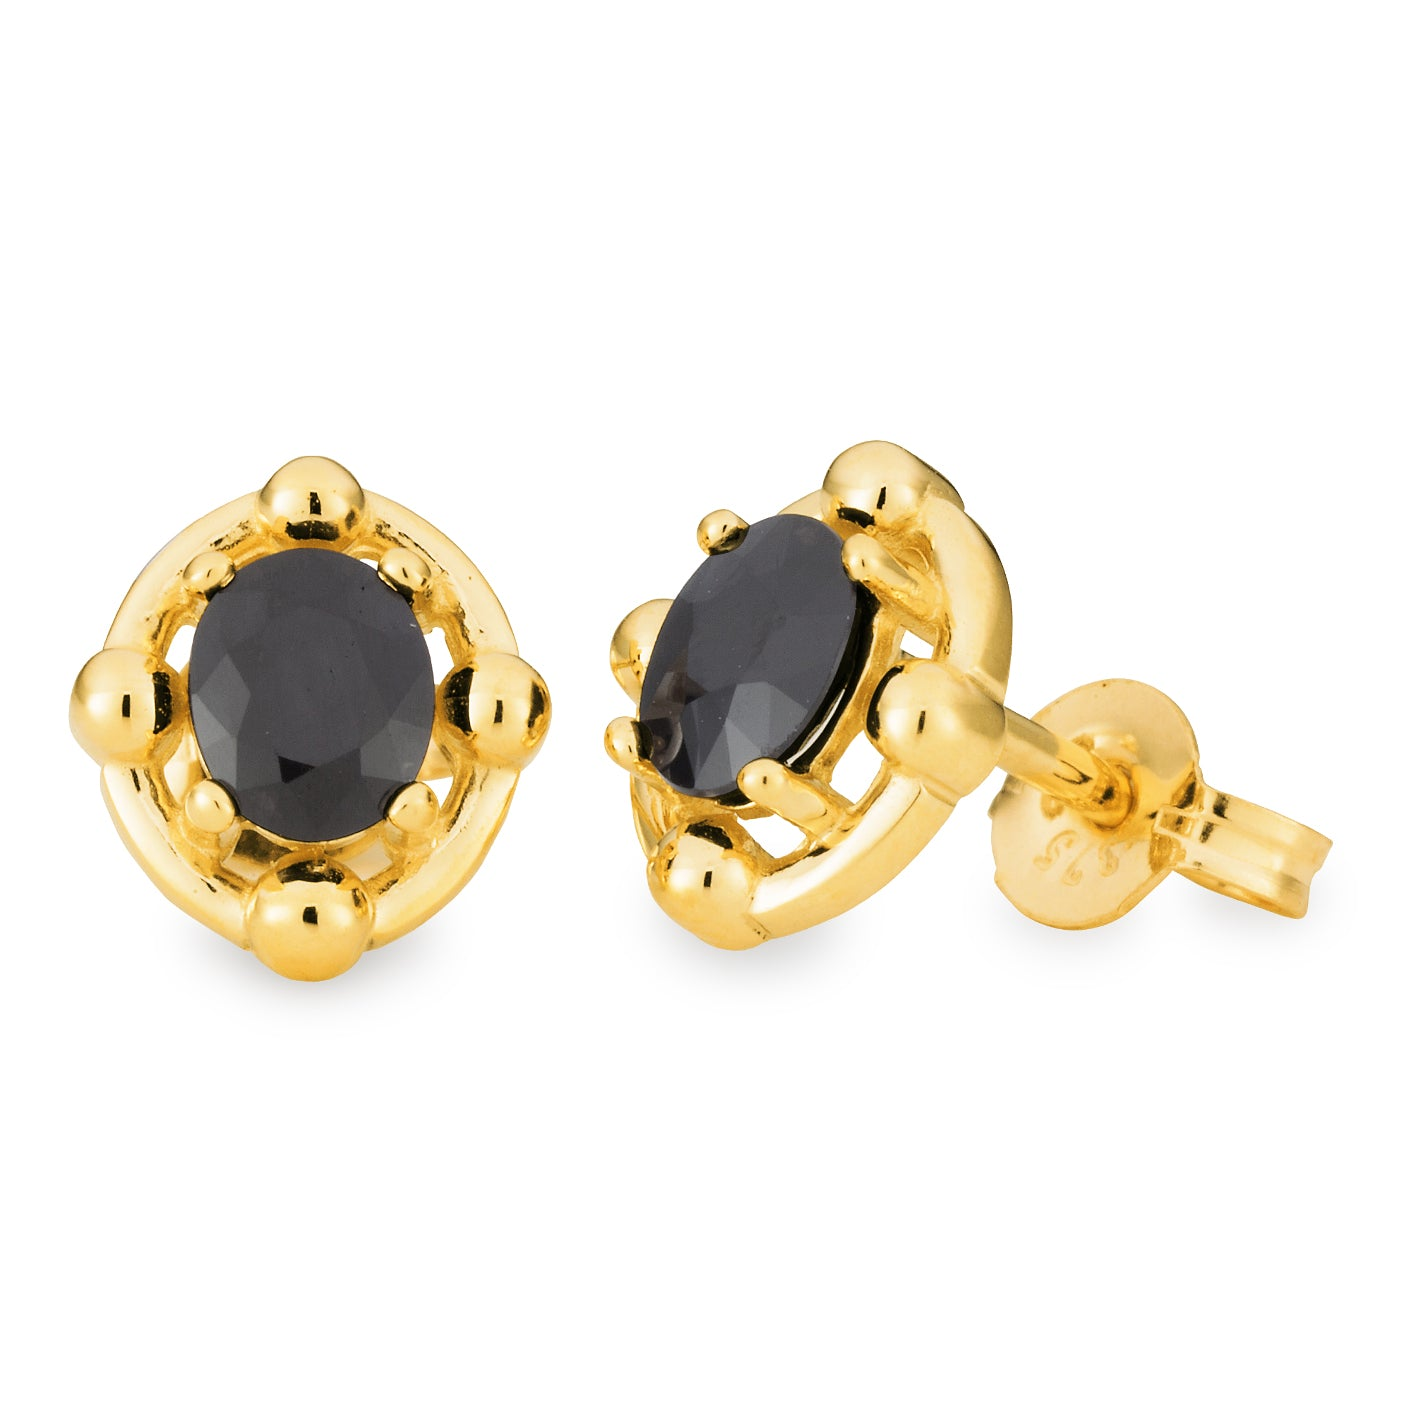 SAPPHIRE (D GRADE) CLAW SET STUD EARRING IN 9CT YELLOW GOLD TDW N/A